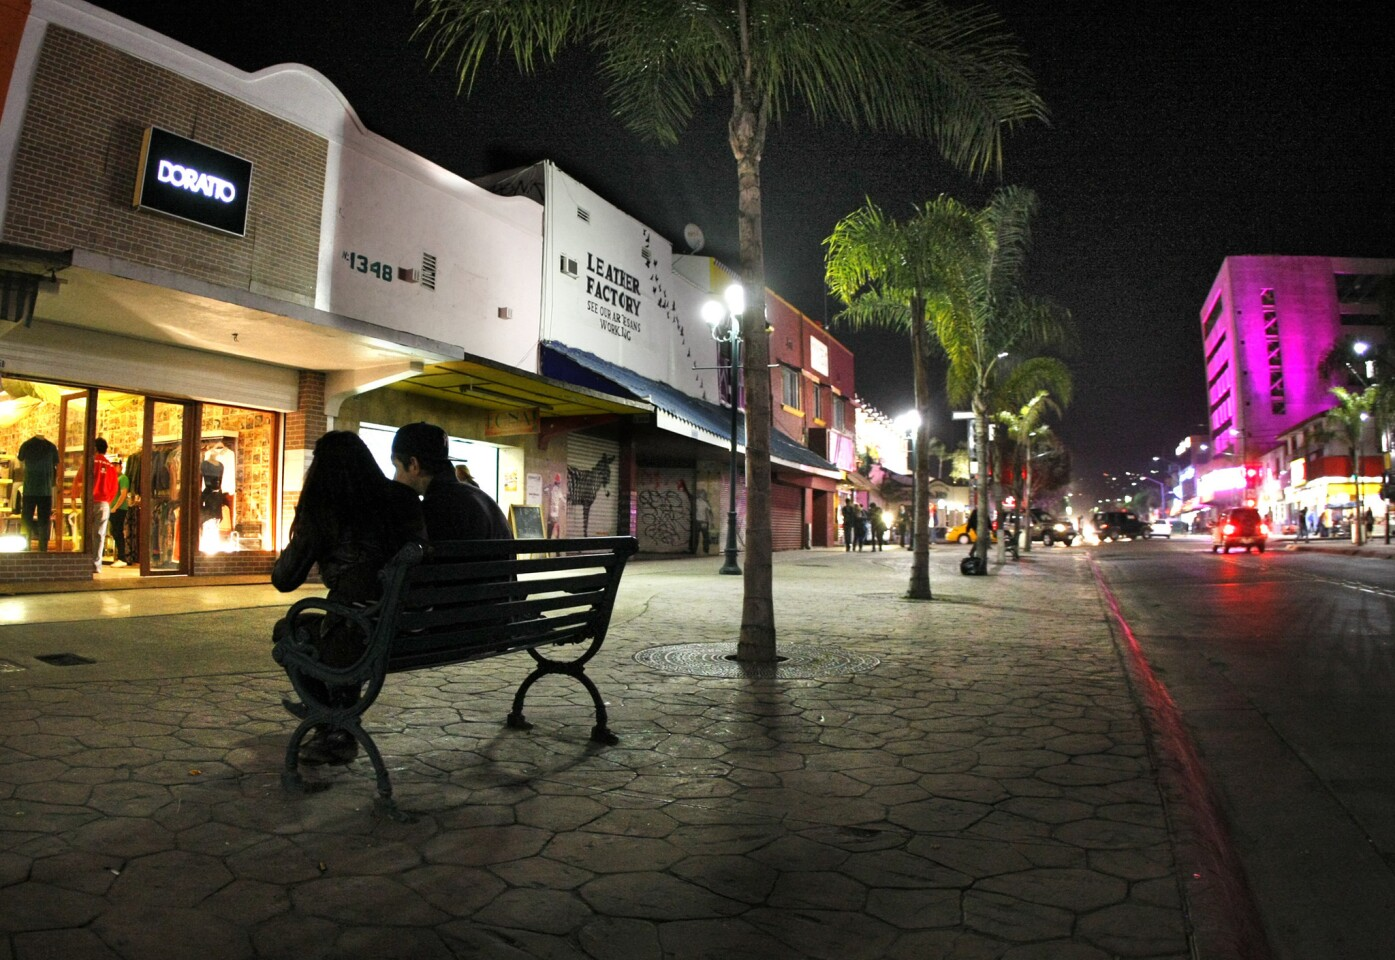 It's a mellow Friday night in Tijuana along a strip on La Revu (Avenida Revolucion), the sense of calm a far cry from years past when fears of drug-war violence kept locals indoors and tourists away.